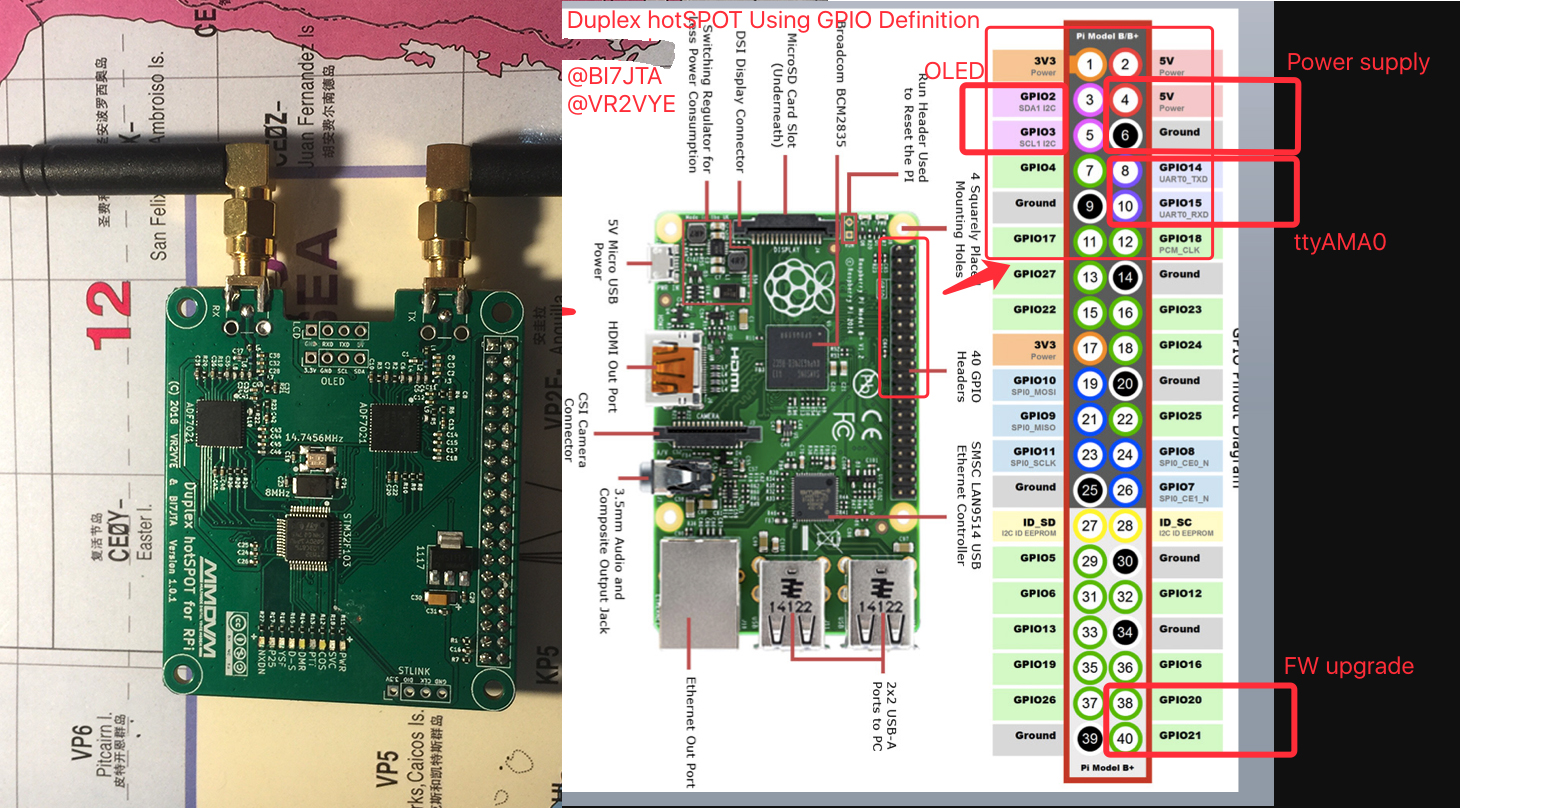 BI7JTA BLOG for MMDVM: GPIO Definition And Interface Diagram for